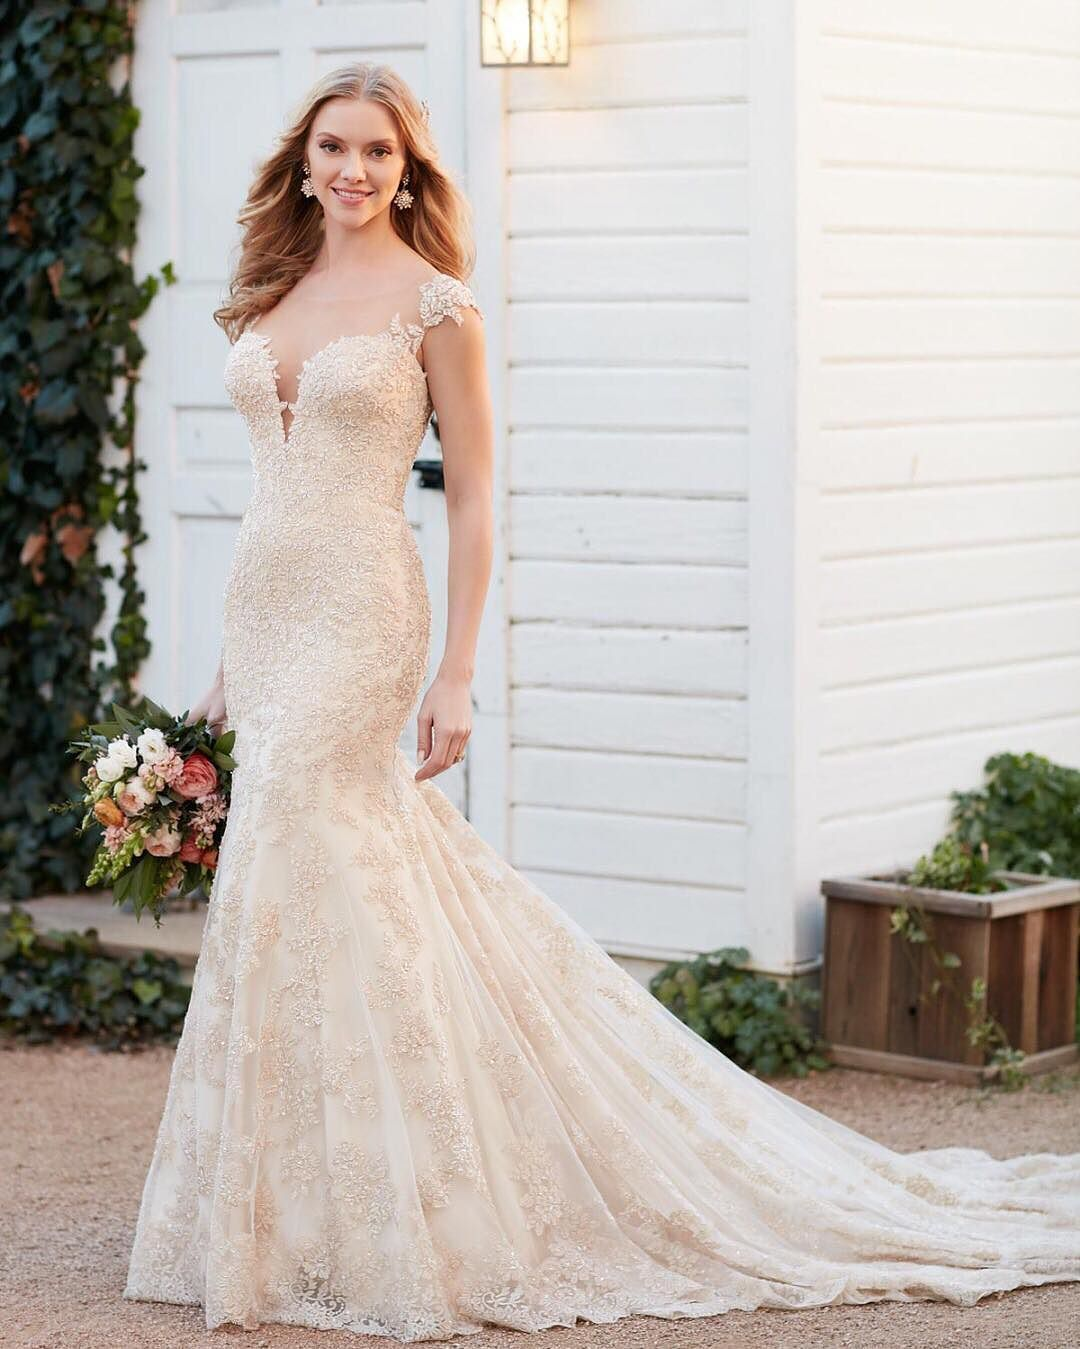 Wedding dresses for broad shoulders  Pin by Essense of Australia on Shop the look  Pinterest